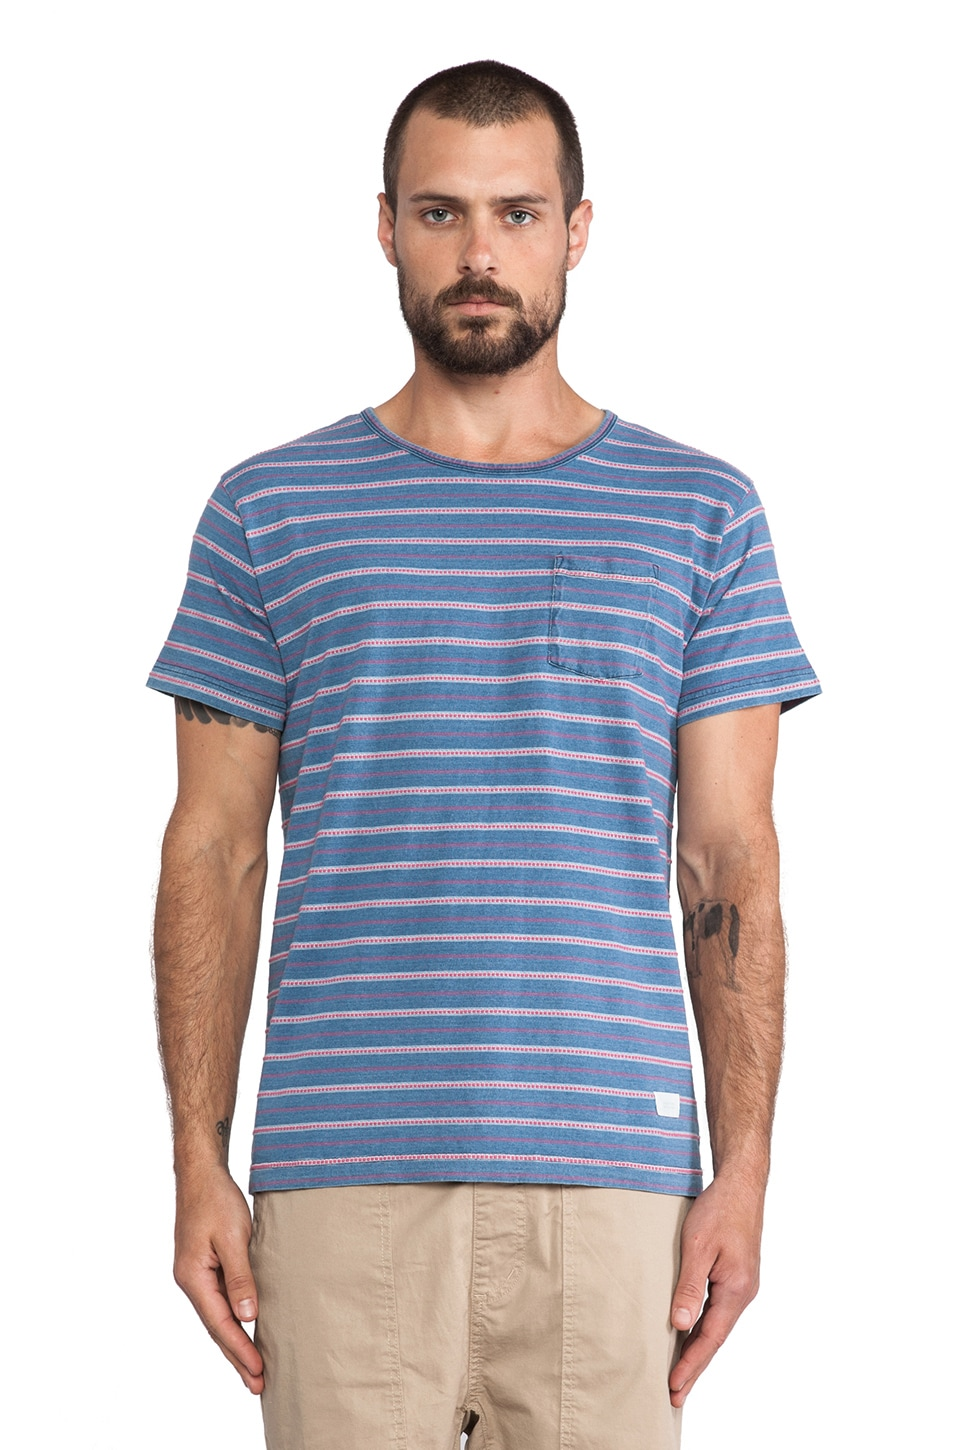 OURS Indigo Pocket Tee in Red Stripe